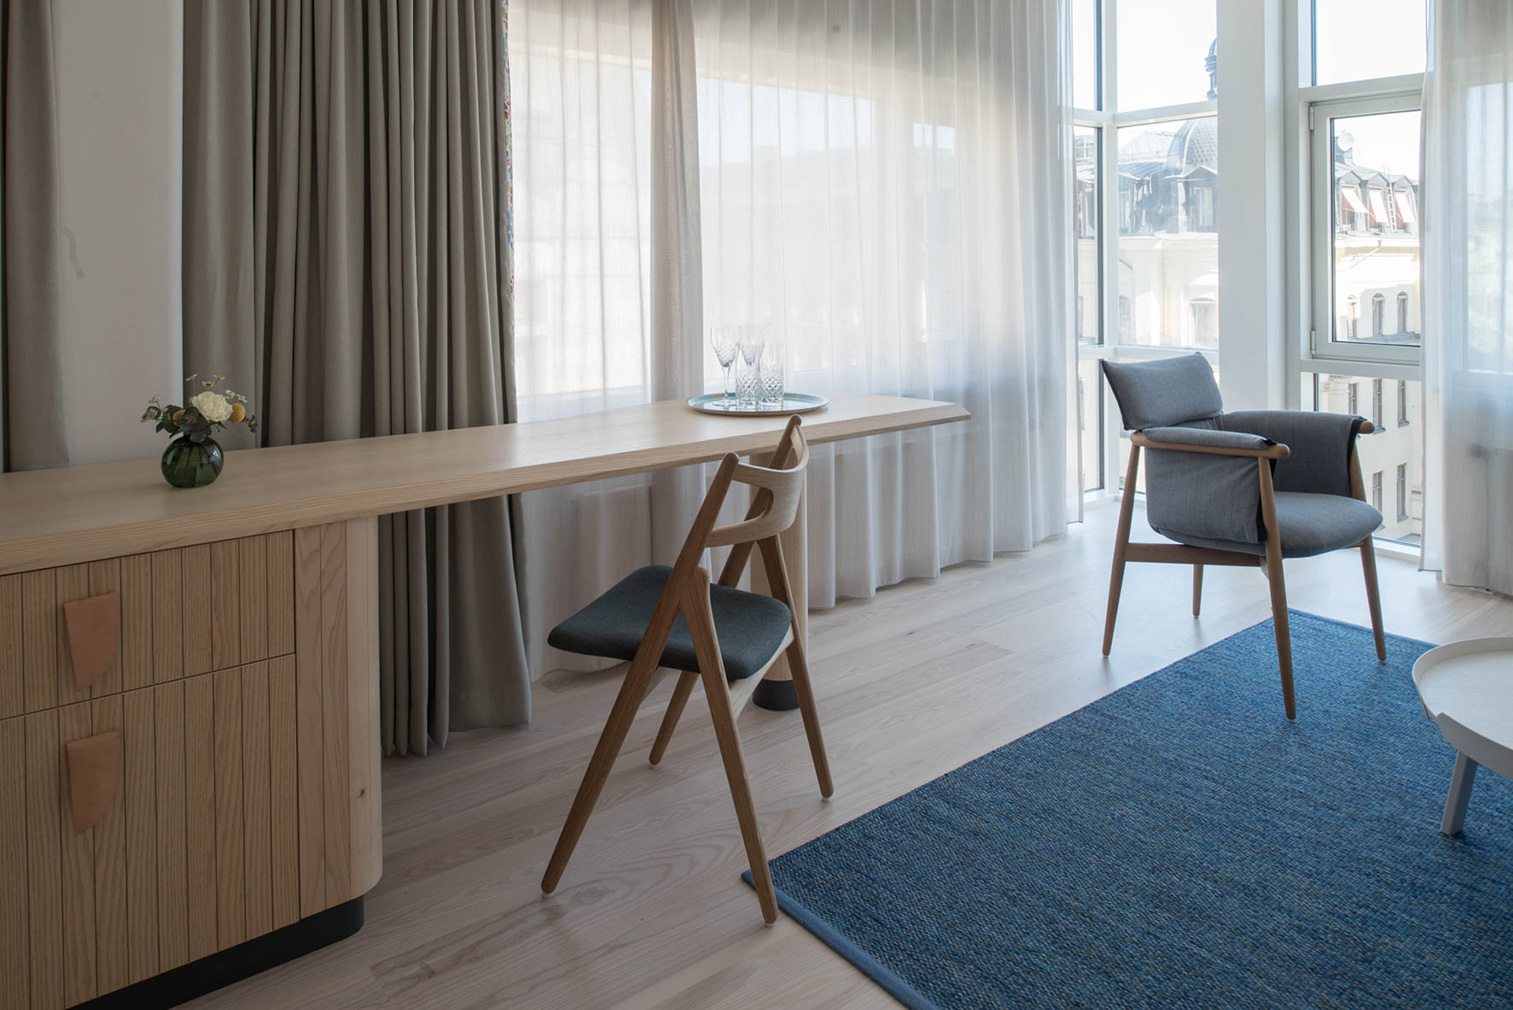 All-star cast of Scandi designers relaunch Stockholm's Nordic Light Hotel